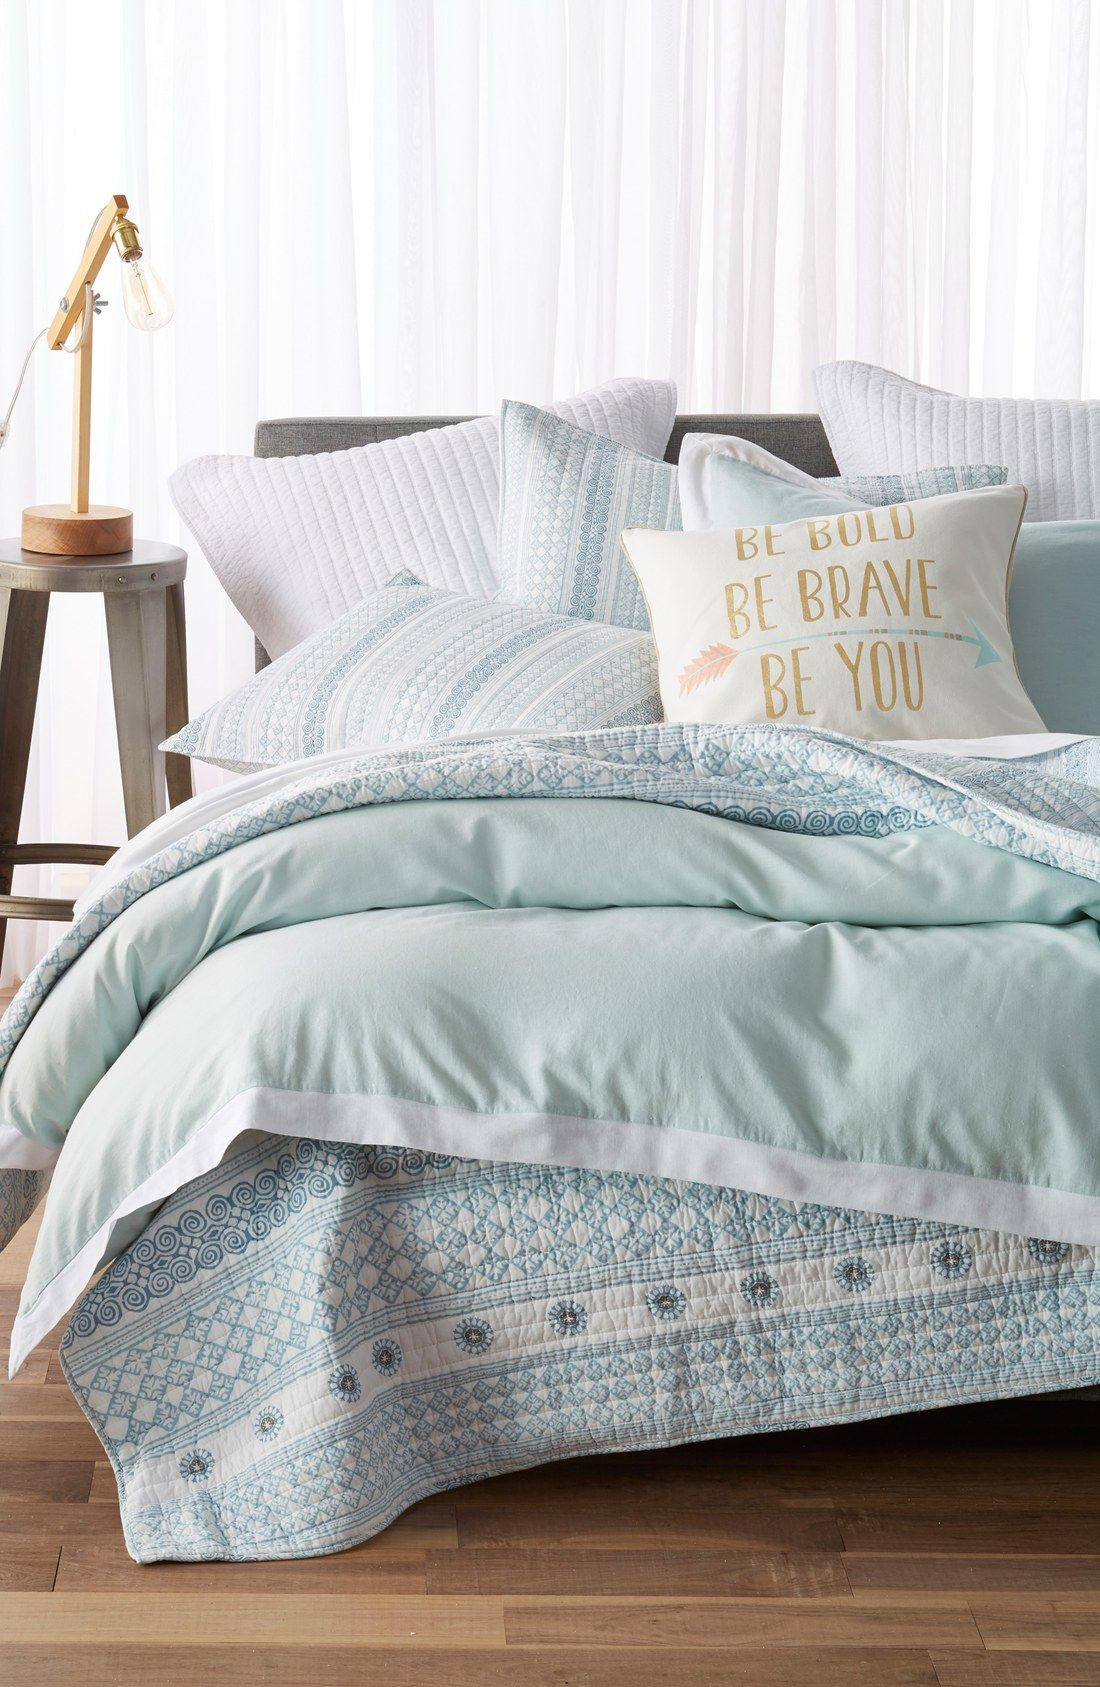 20 Cool Master Bedroom Designs Collection: Adoring This Cozy Bedroom Set With Cool Blues And Chic